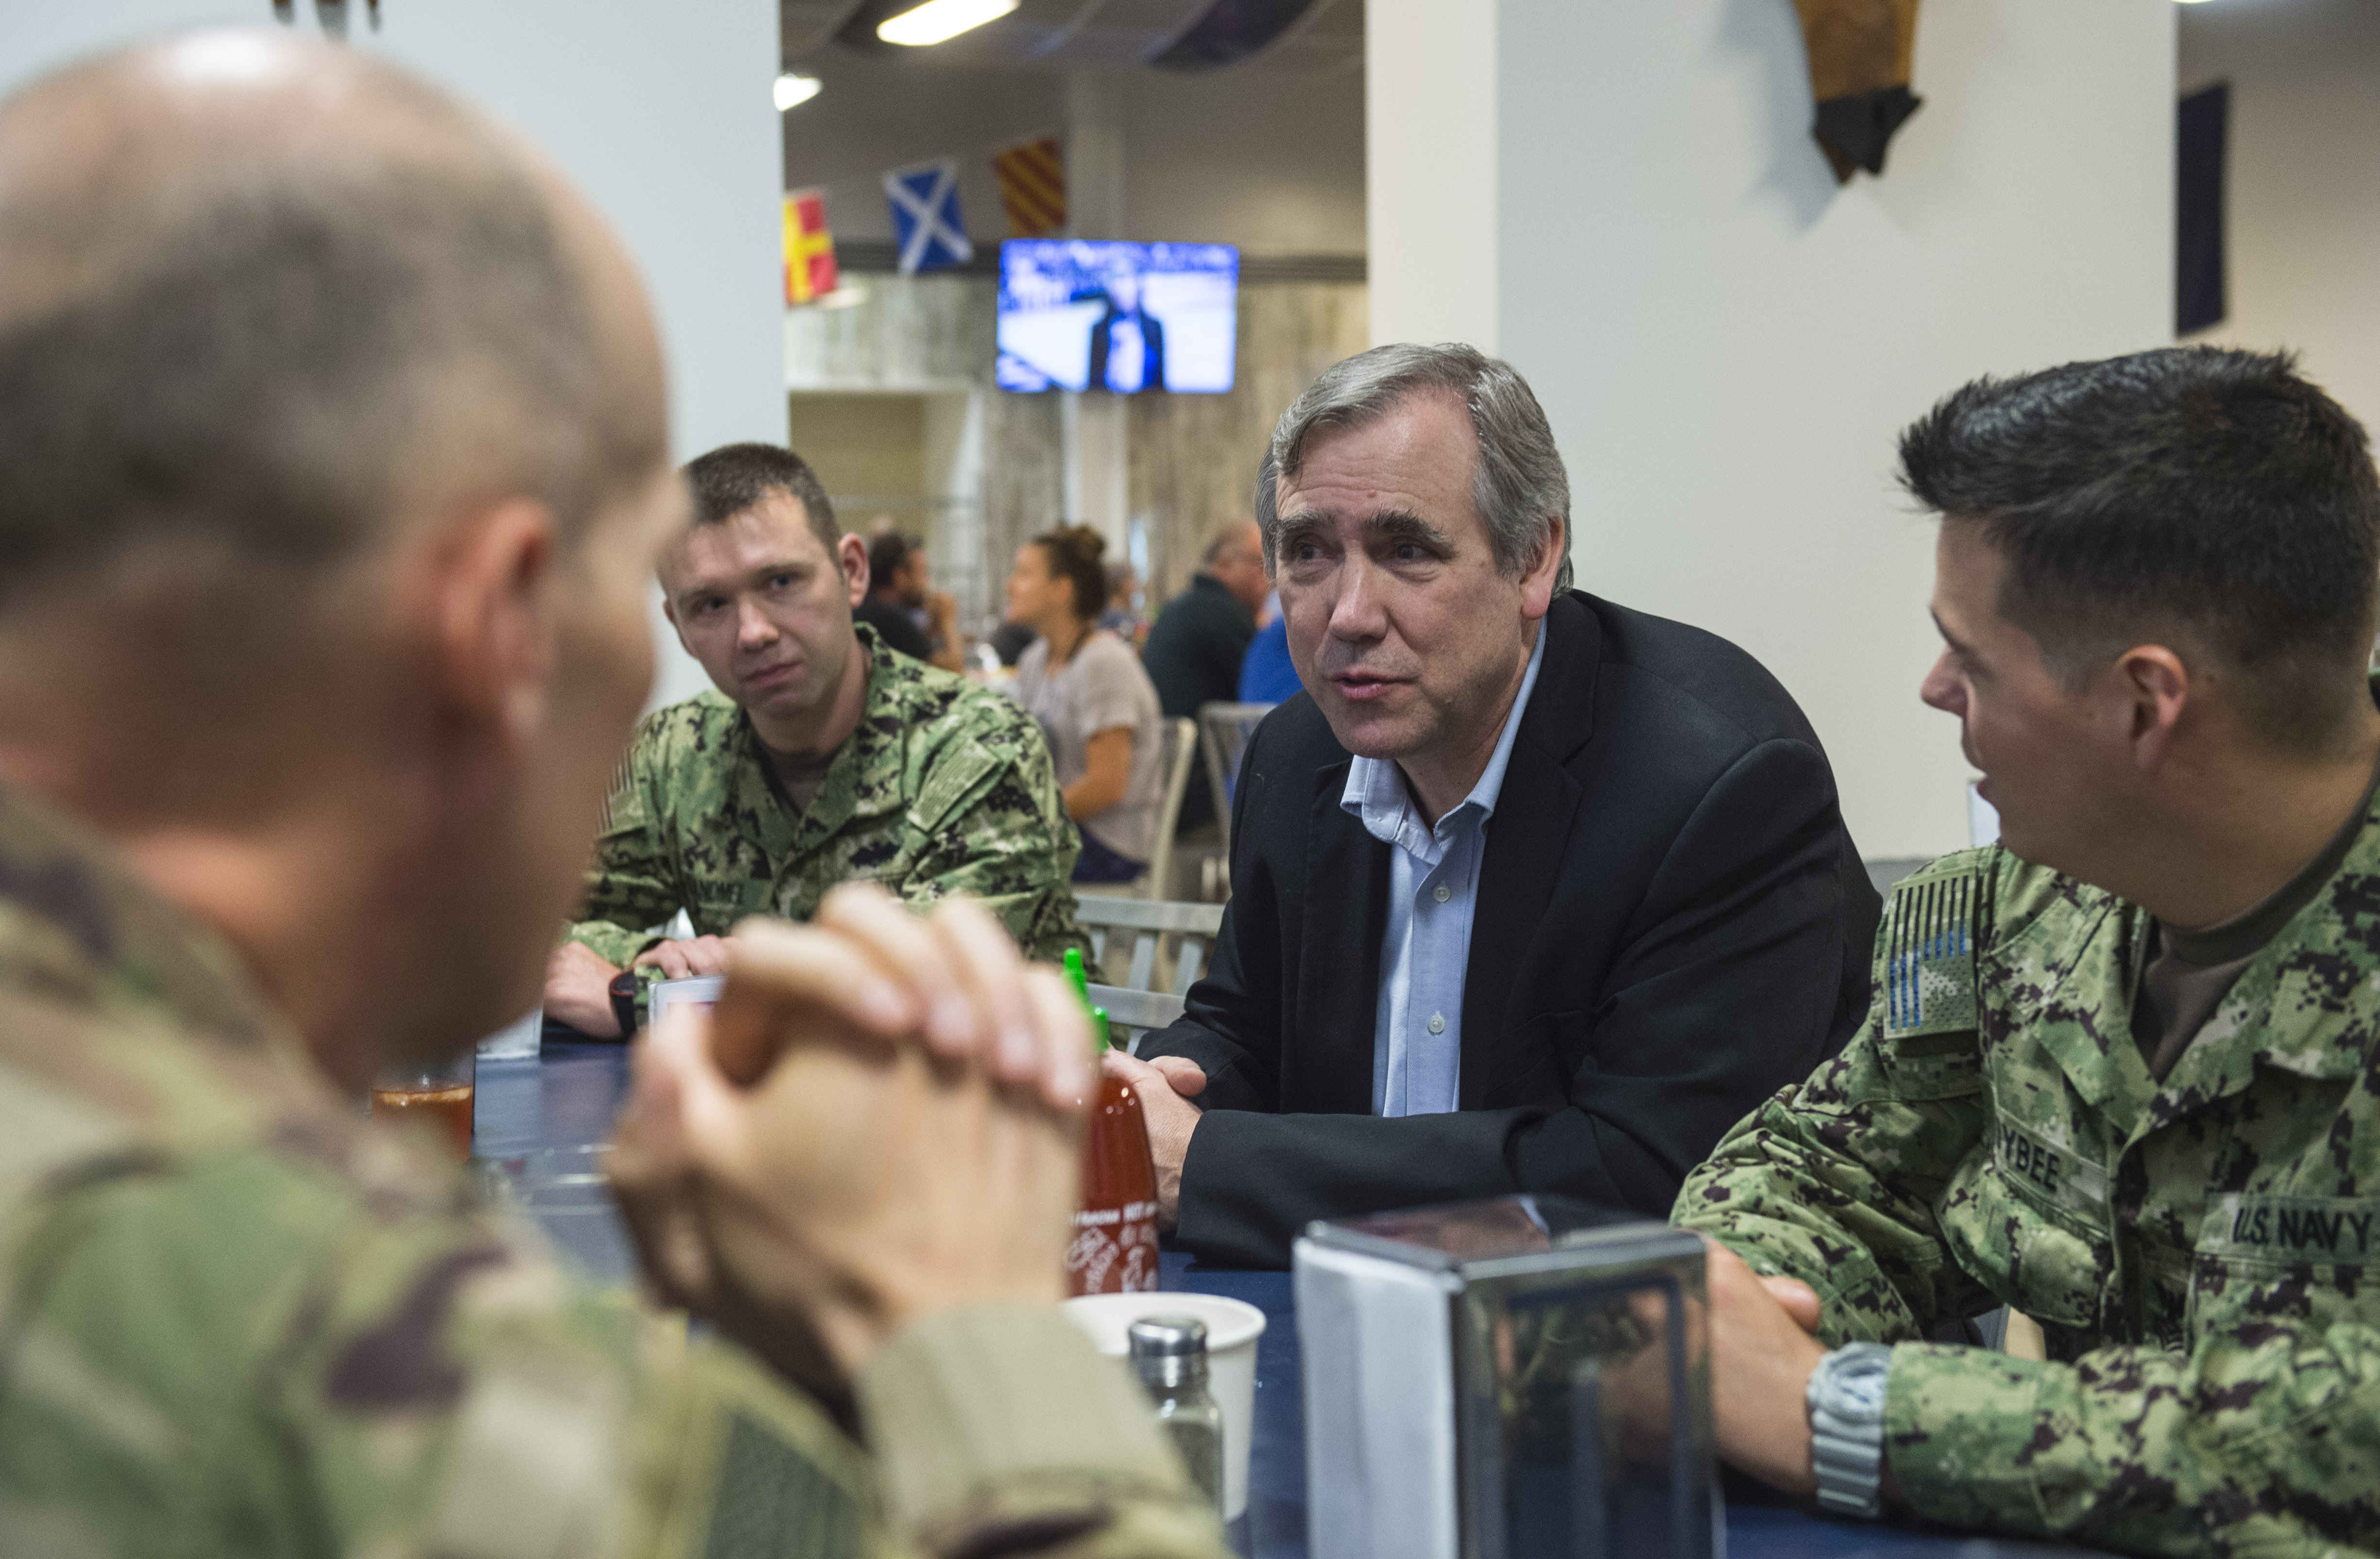 U.S. Sen. Jeff Merkley, Oregon, speaks with service members deployed to Camp Lemonnier, Djibouti, during a visit to the Combined Joint Task Force - Horn of Africa (CJTF-HOA) March 26, 2018. Merkley visited with service members at Camp Lemonnier before continuing his trip to other locations in East Africa. As a member of the U.S. Senate Foreign Relations Committee, Merkley's visit focused on the critical role that U.S. assistance plays as he examined famine-like conditions, severe food shortages, internally displaced persons and refugees in each location and how these factors affect counter-terrorism efforts within the CTJF-HOA area of responsibility. (U.S. Air Force photo by Staff Sgt. Timothy Moore)